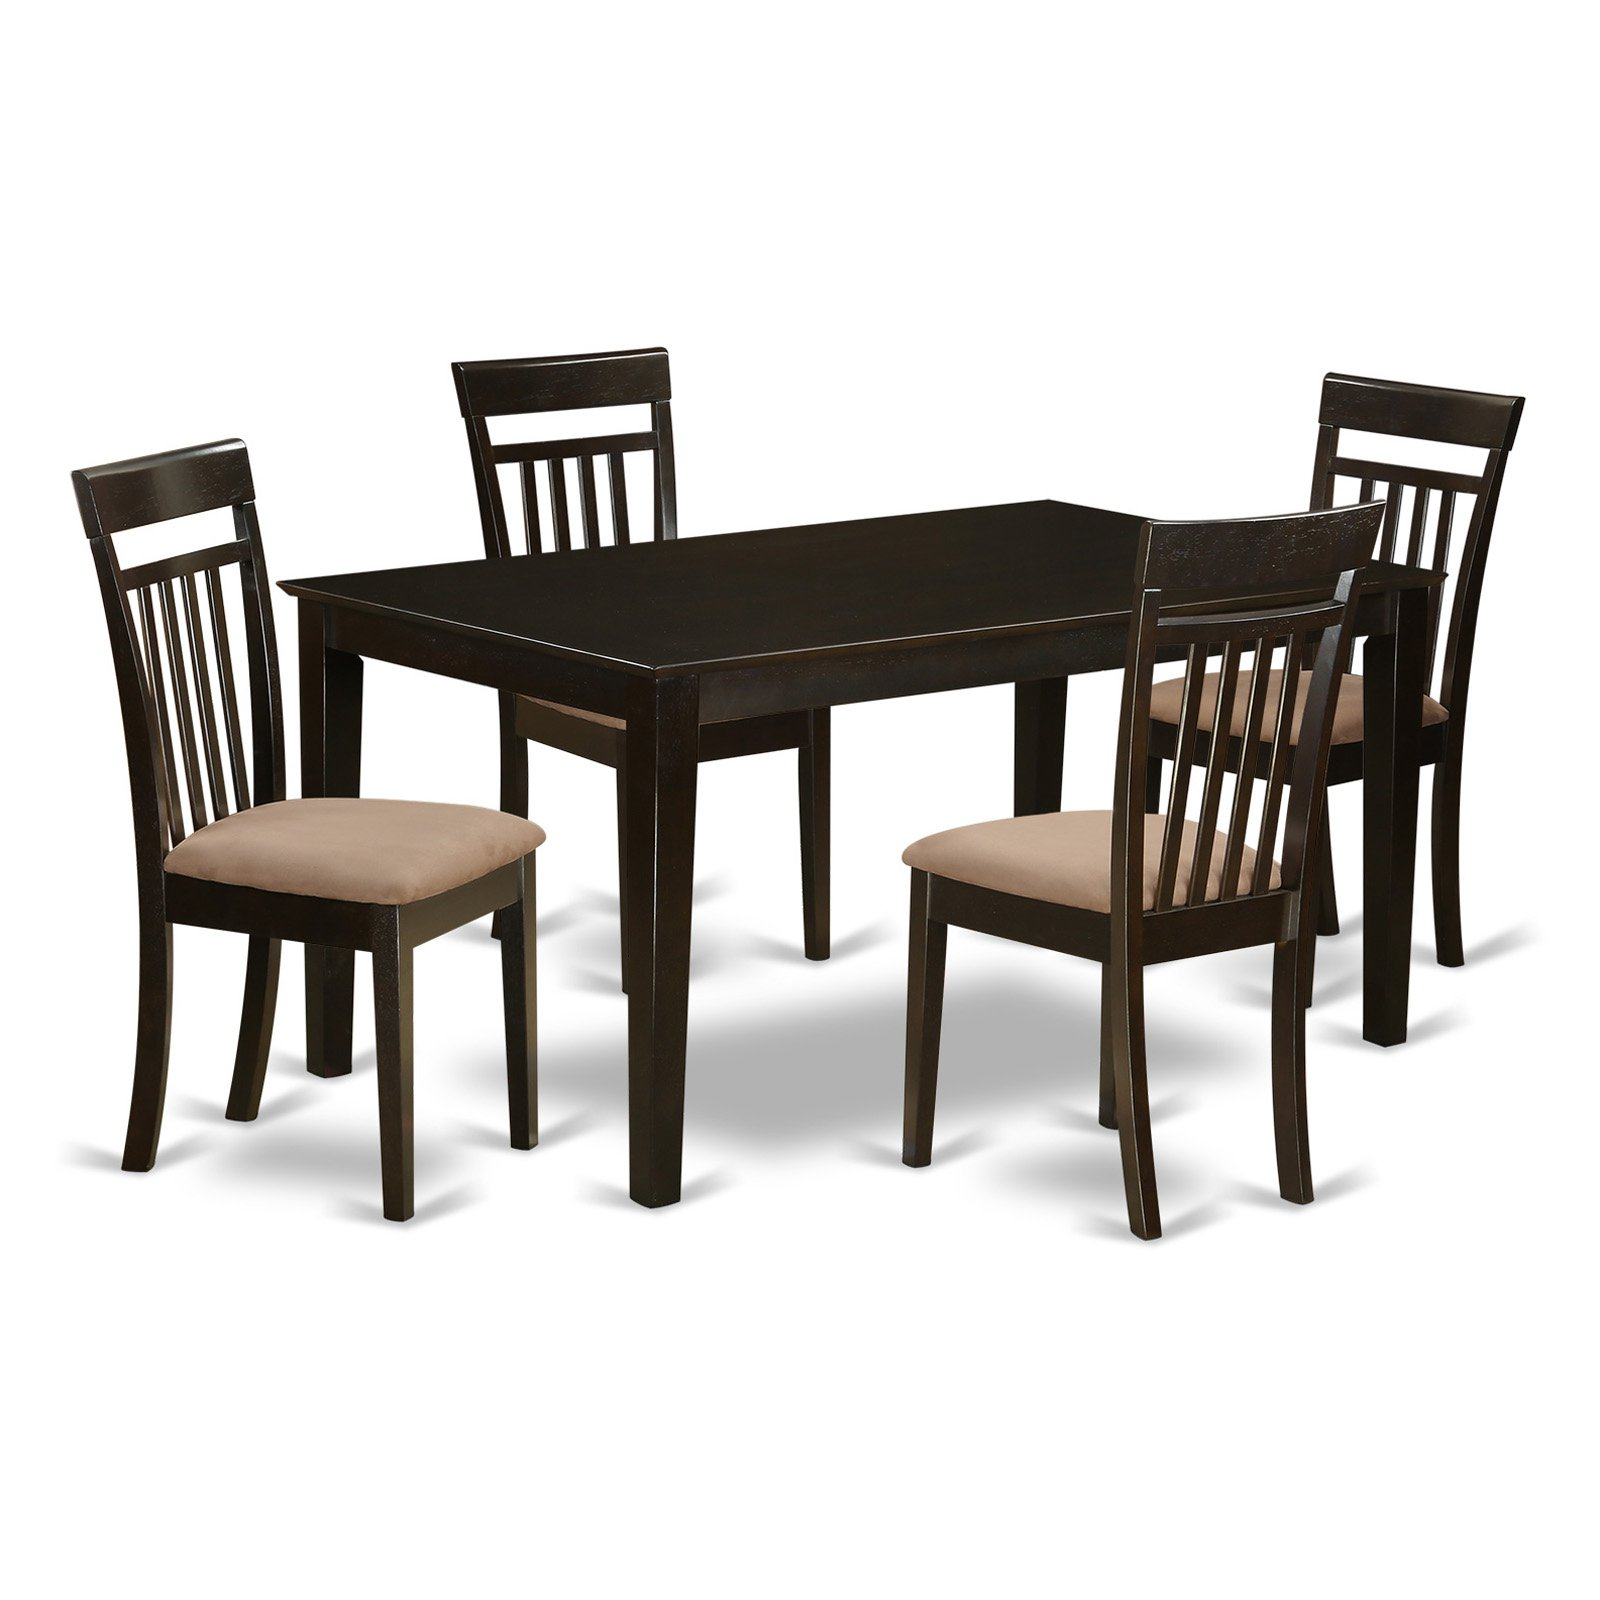 East West Furniture Capri 5 Piece Sheraton Dining Table Set